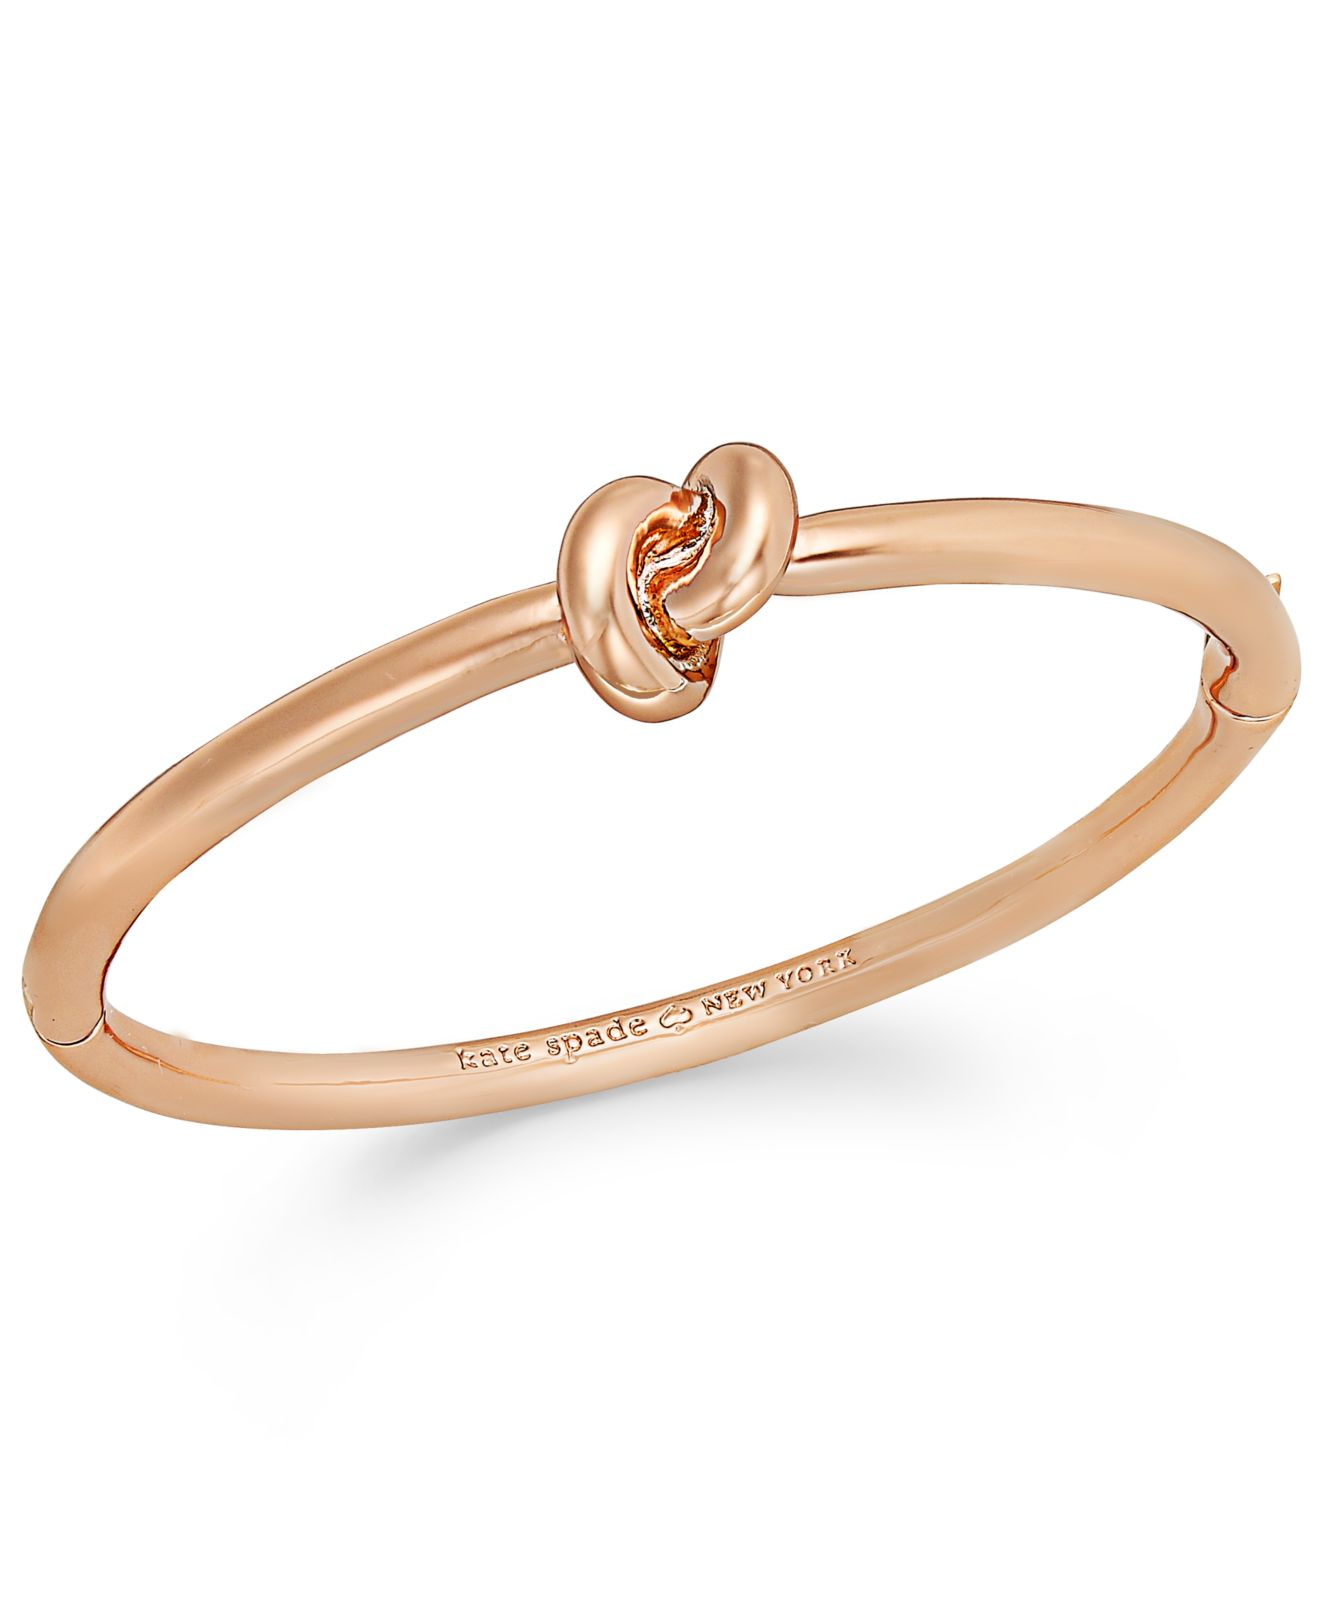 Gallery Previously Sold At Macy S Women Kate Spade Gold Bracelet